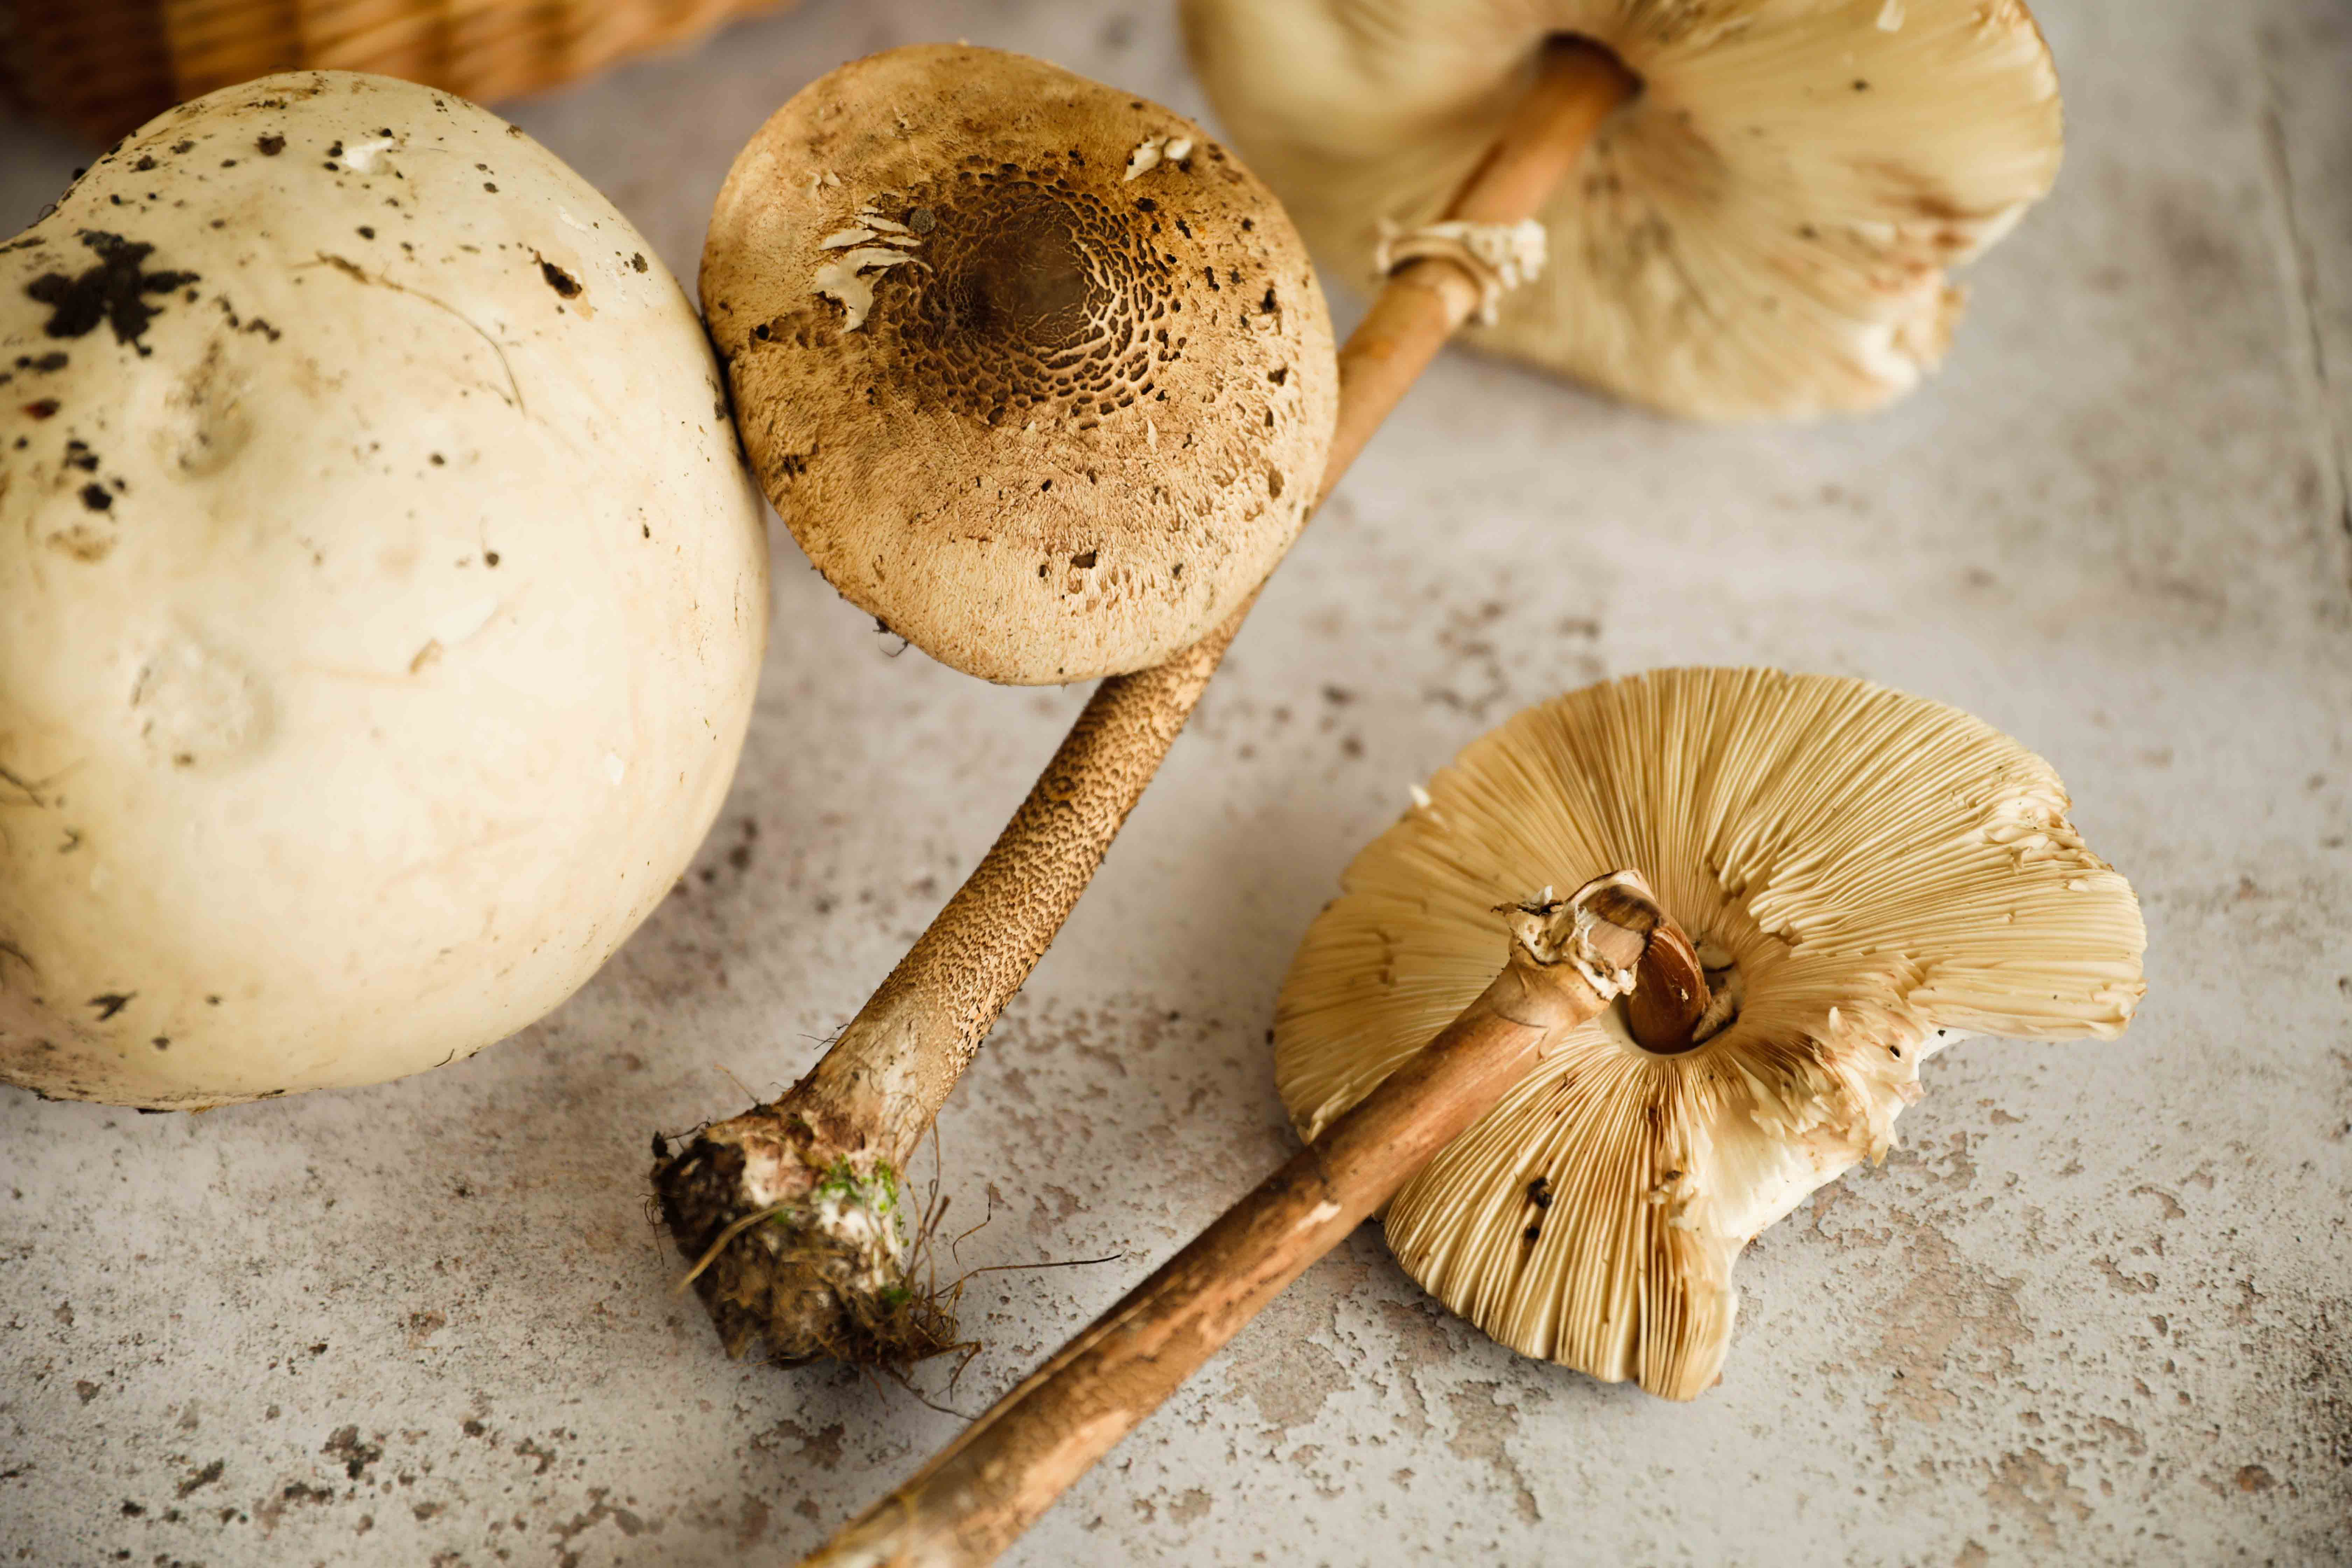 claudialeclercq-edible mushrooms-champignons comestibles_-7